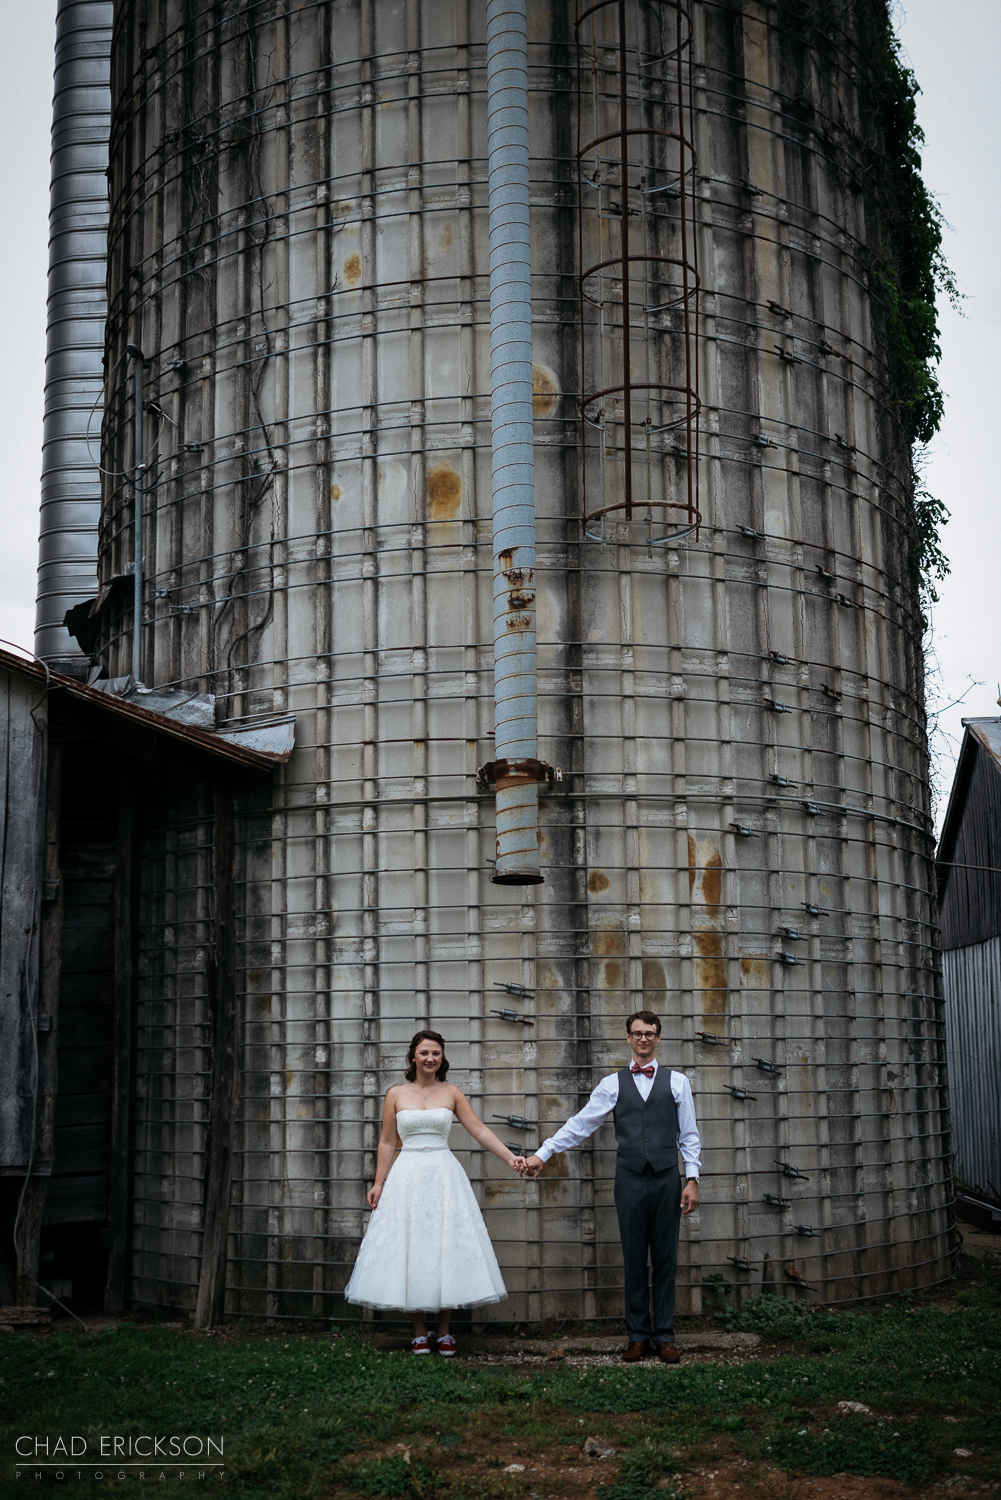 Wedding couple holding hands at silo